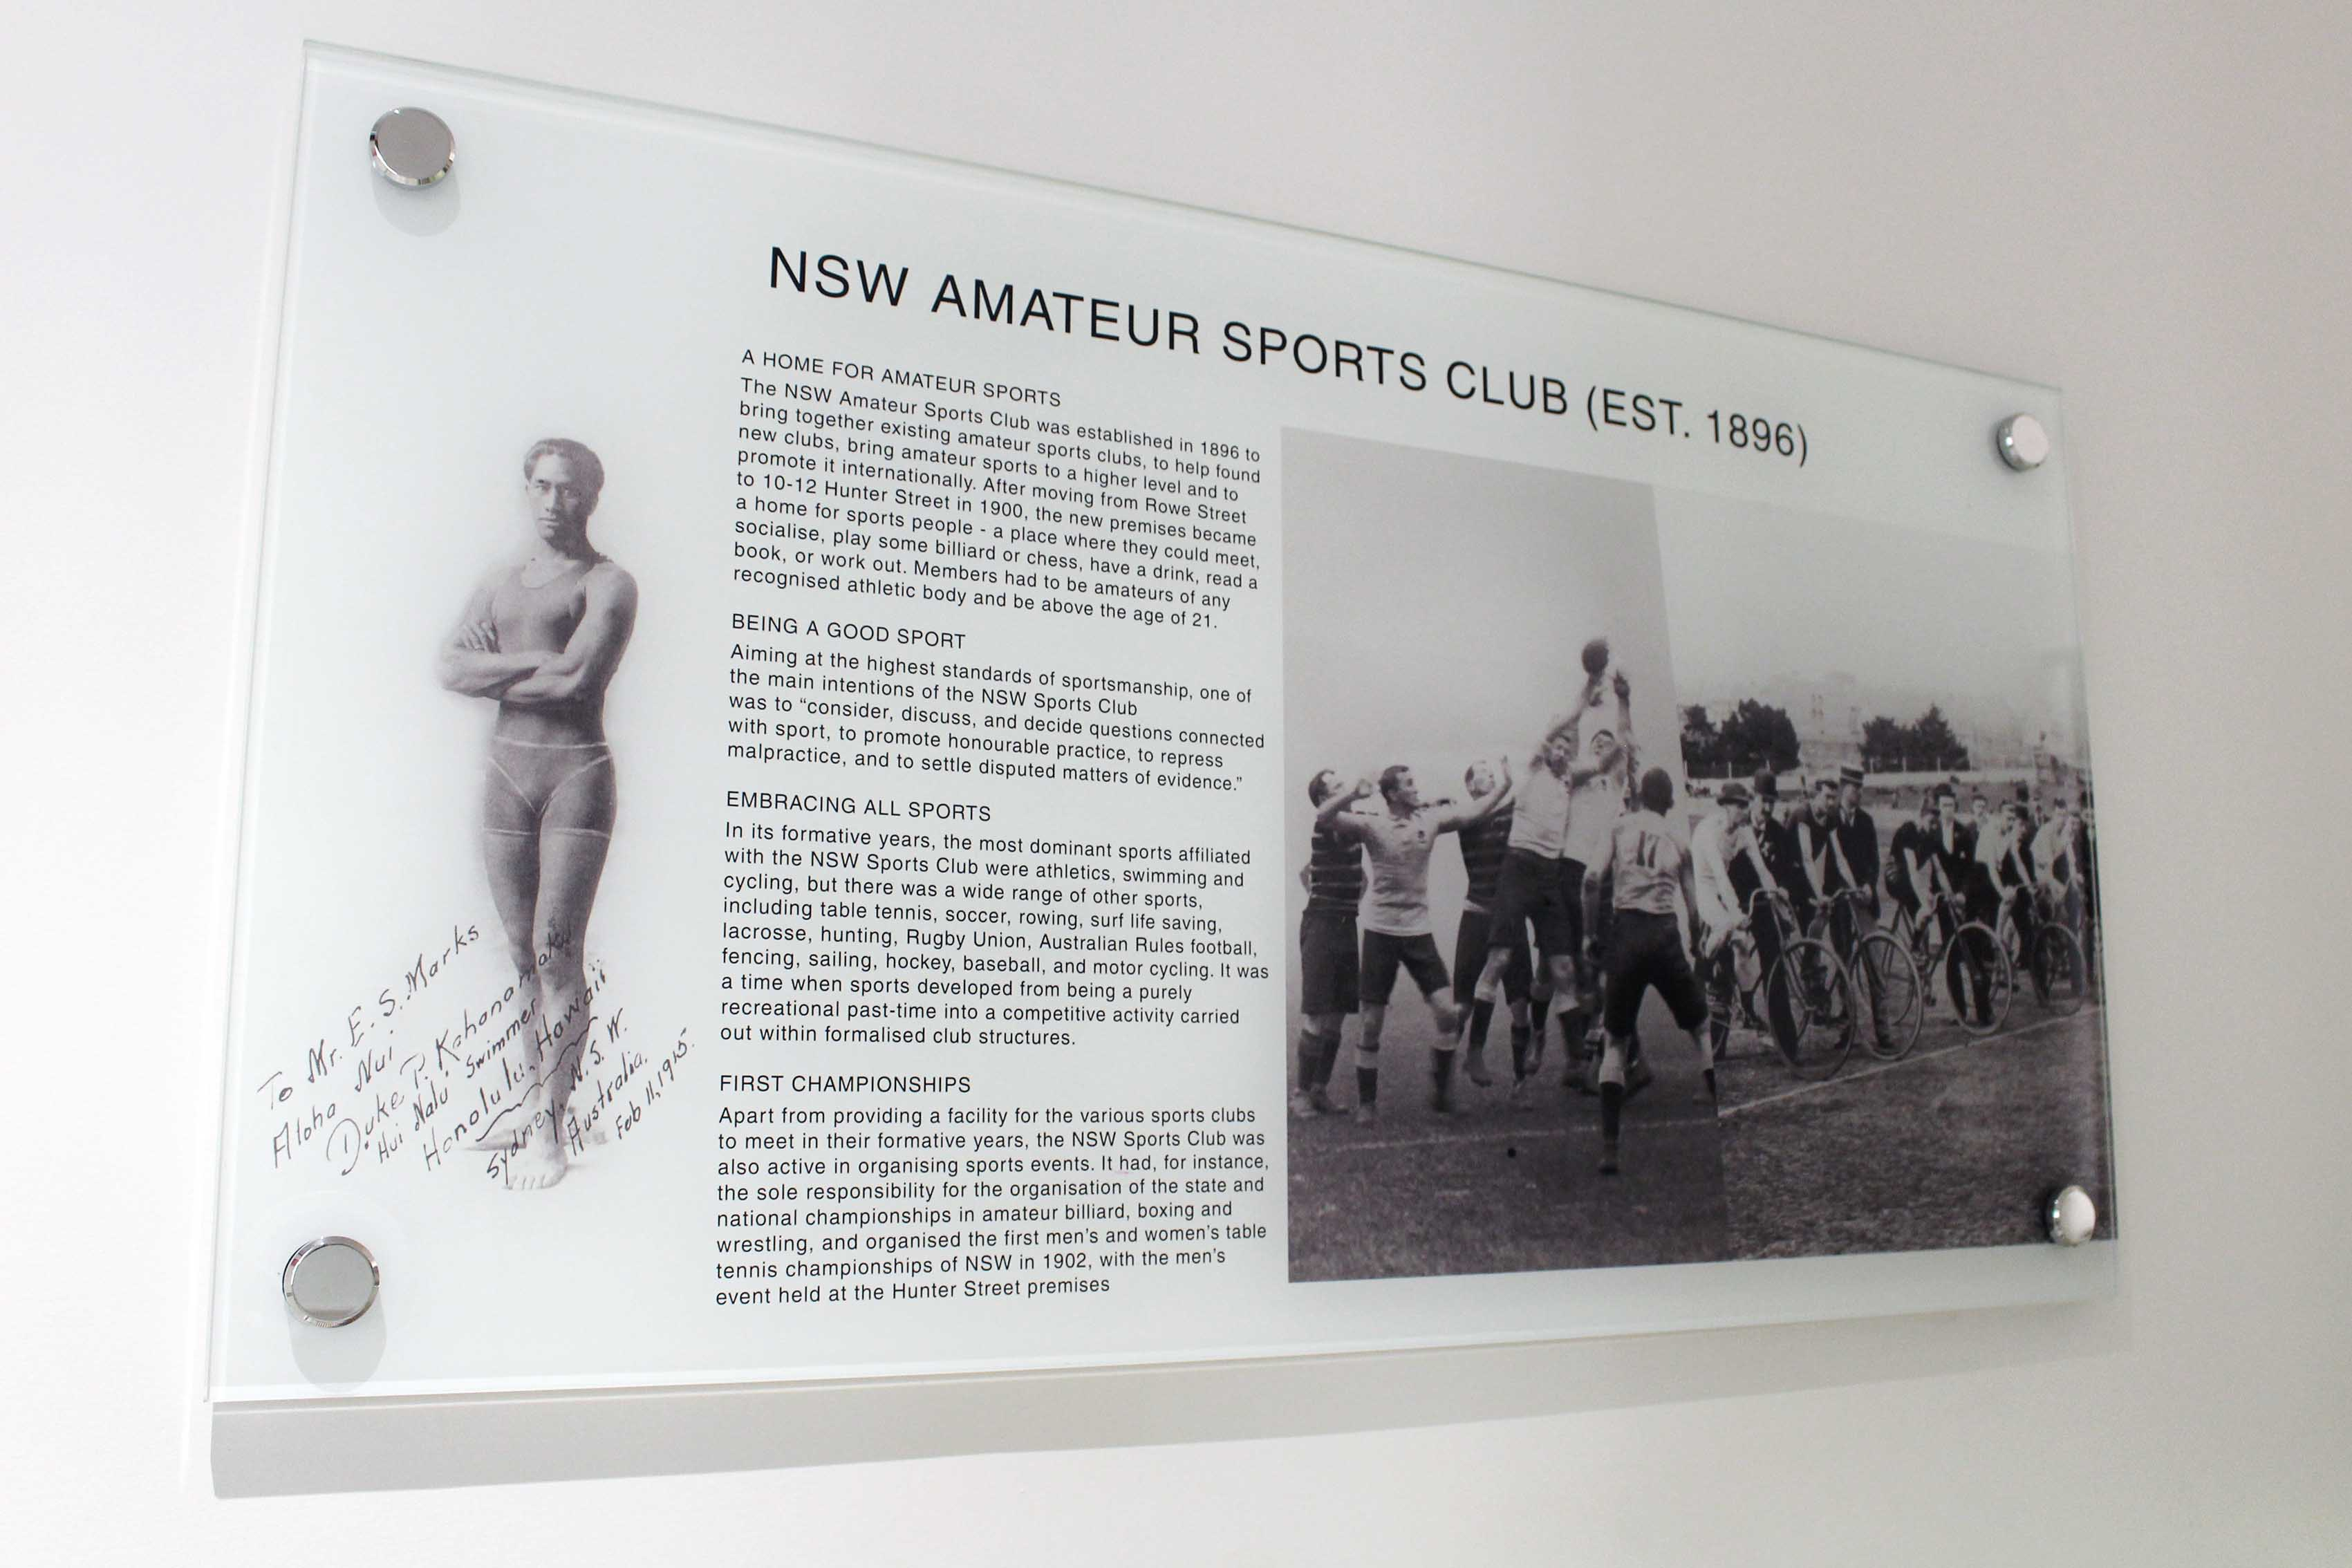 Pin mounted glass informational and pictorial black and white display of the NSW Amateur Sports Club.